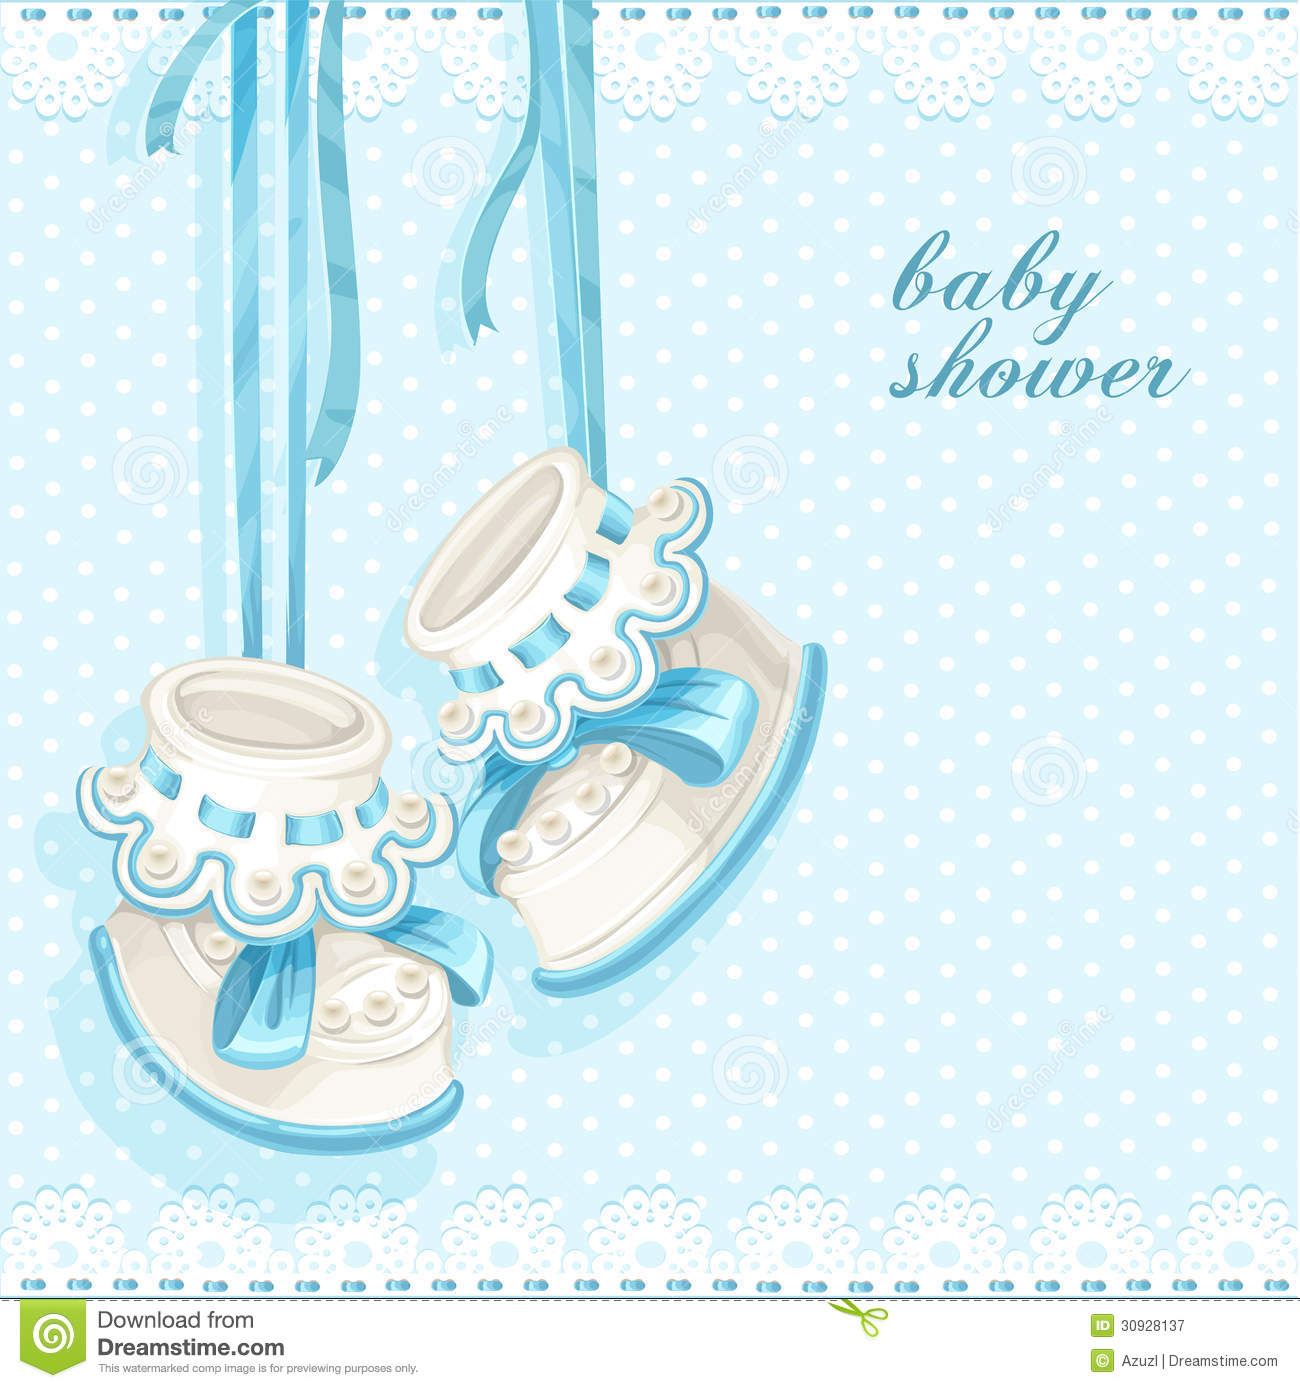 Its A Boy Invitations was good invitation example